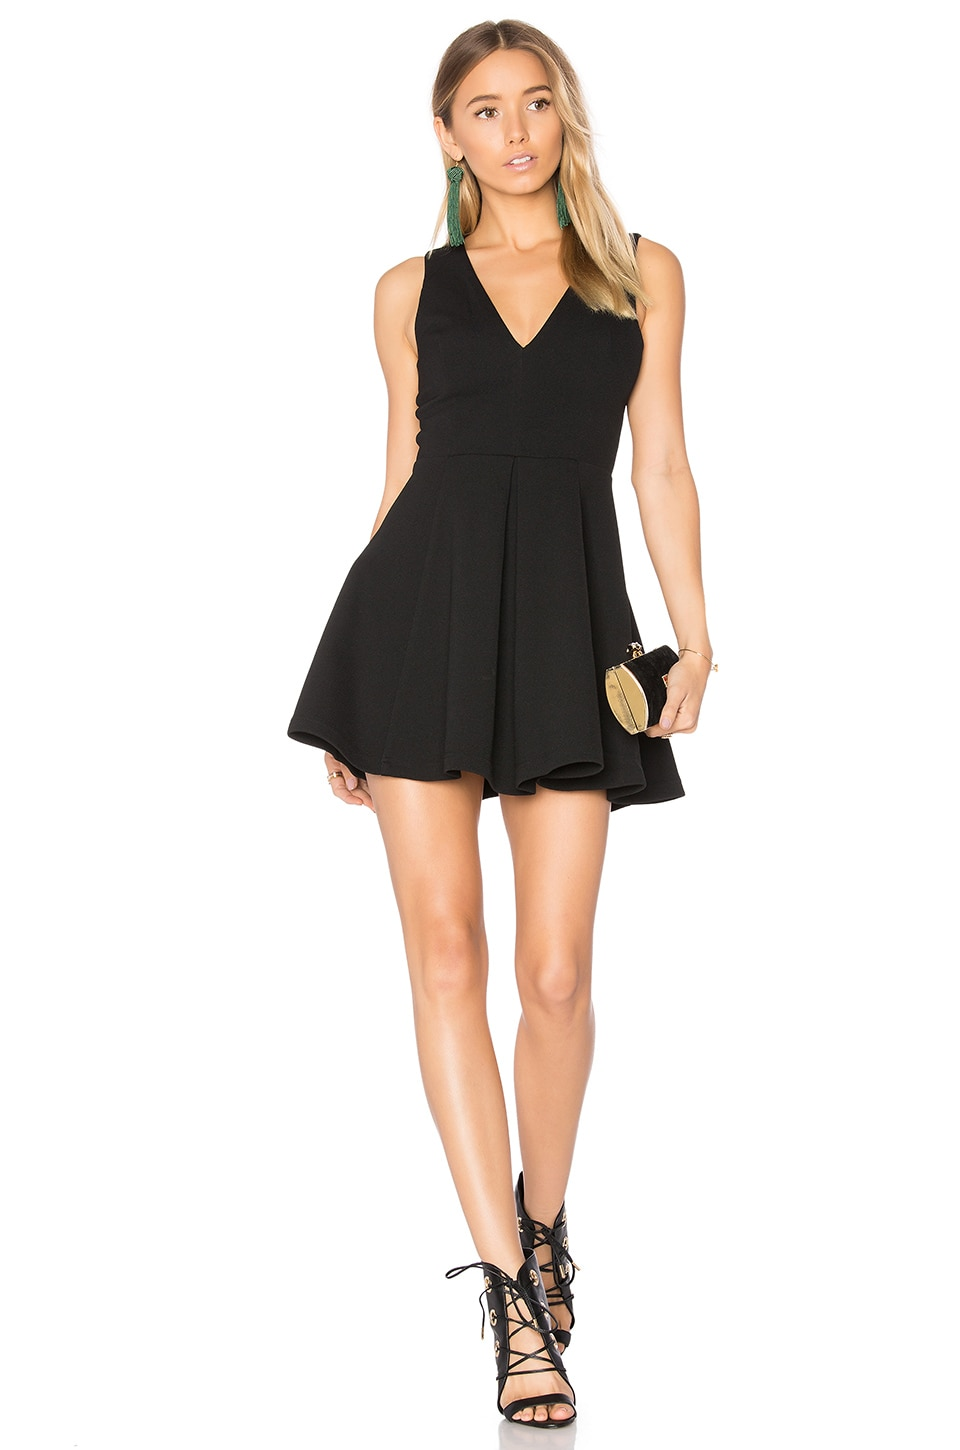 Lovers + Friends Geneva Dress in Black